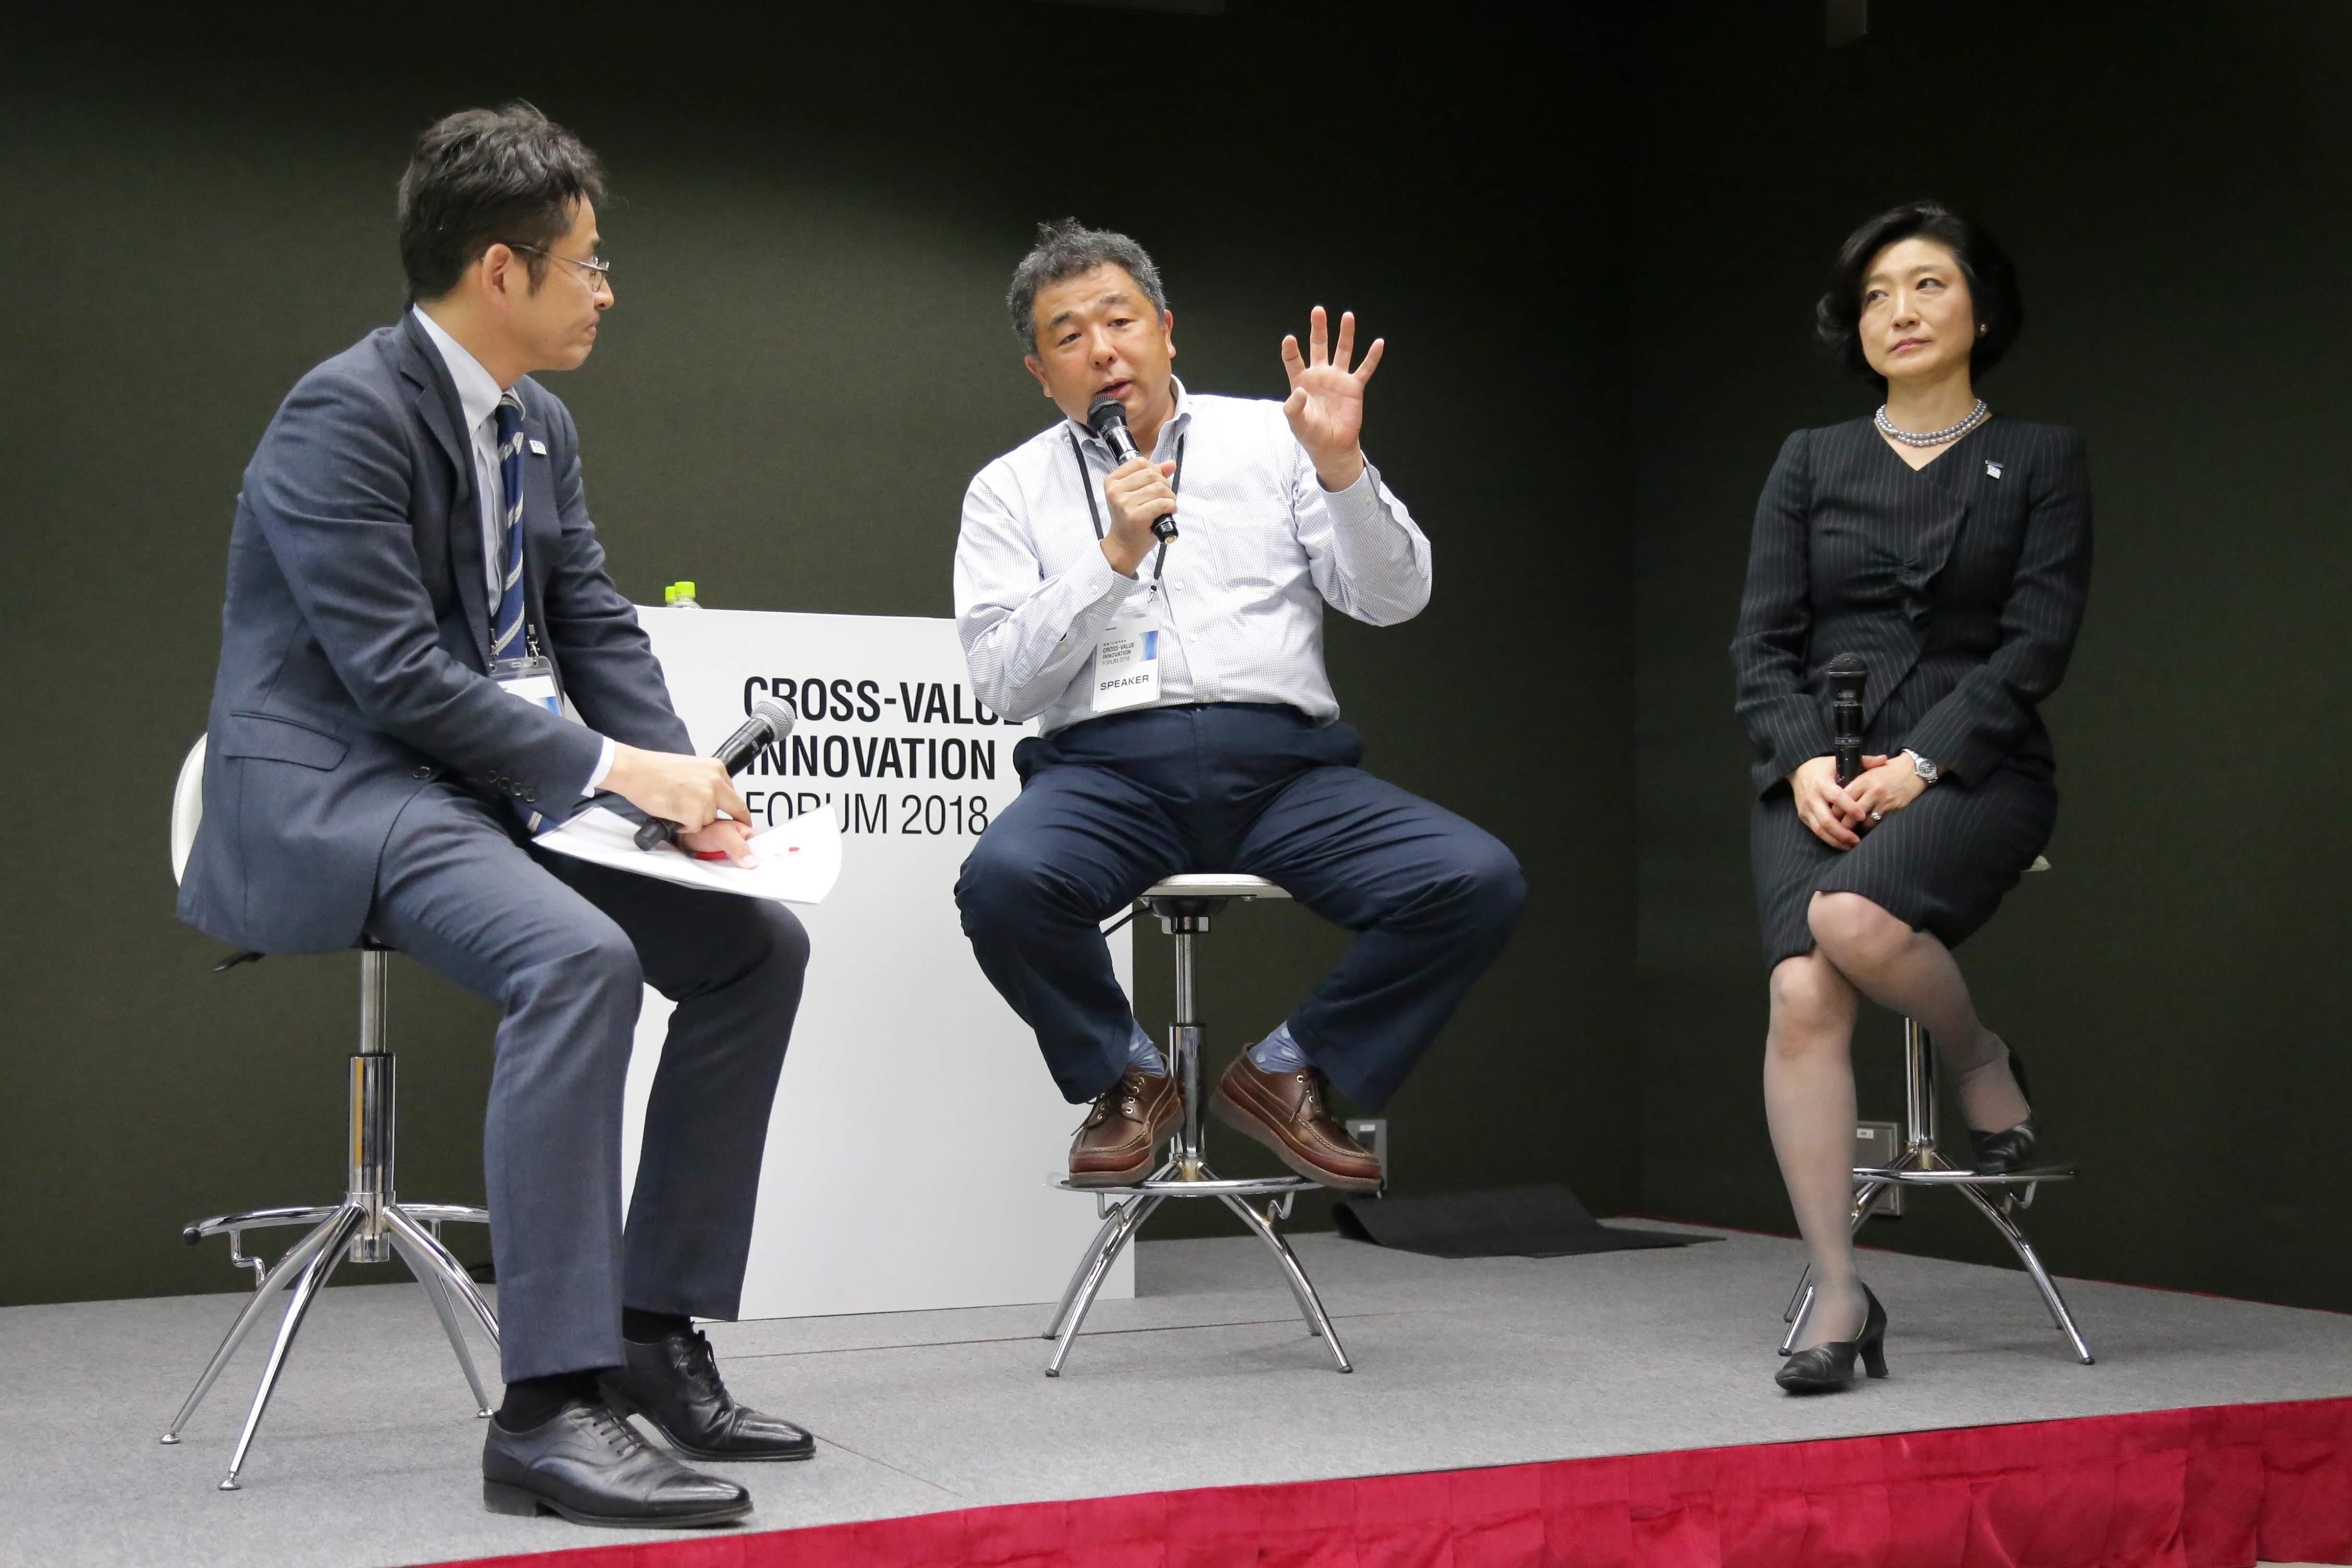 Seminar: Changes in IoT Home Appliances and Near-future Lifestyle / IoT家電の変革と近未来のくらし